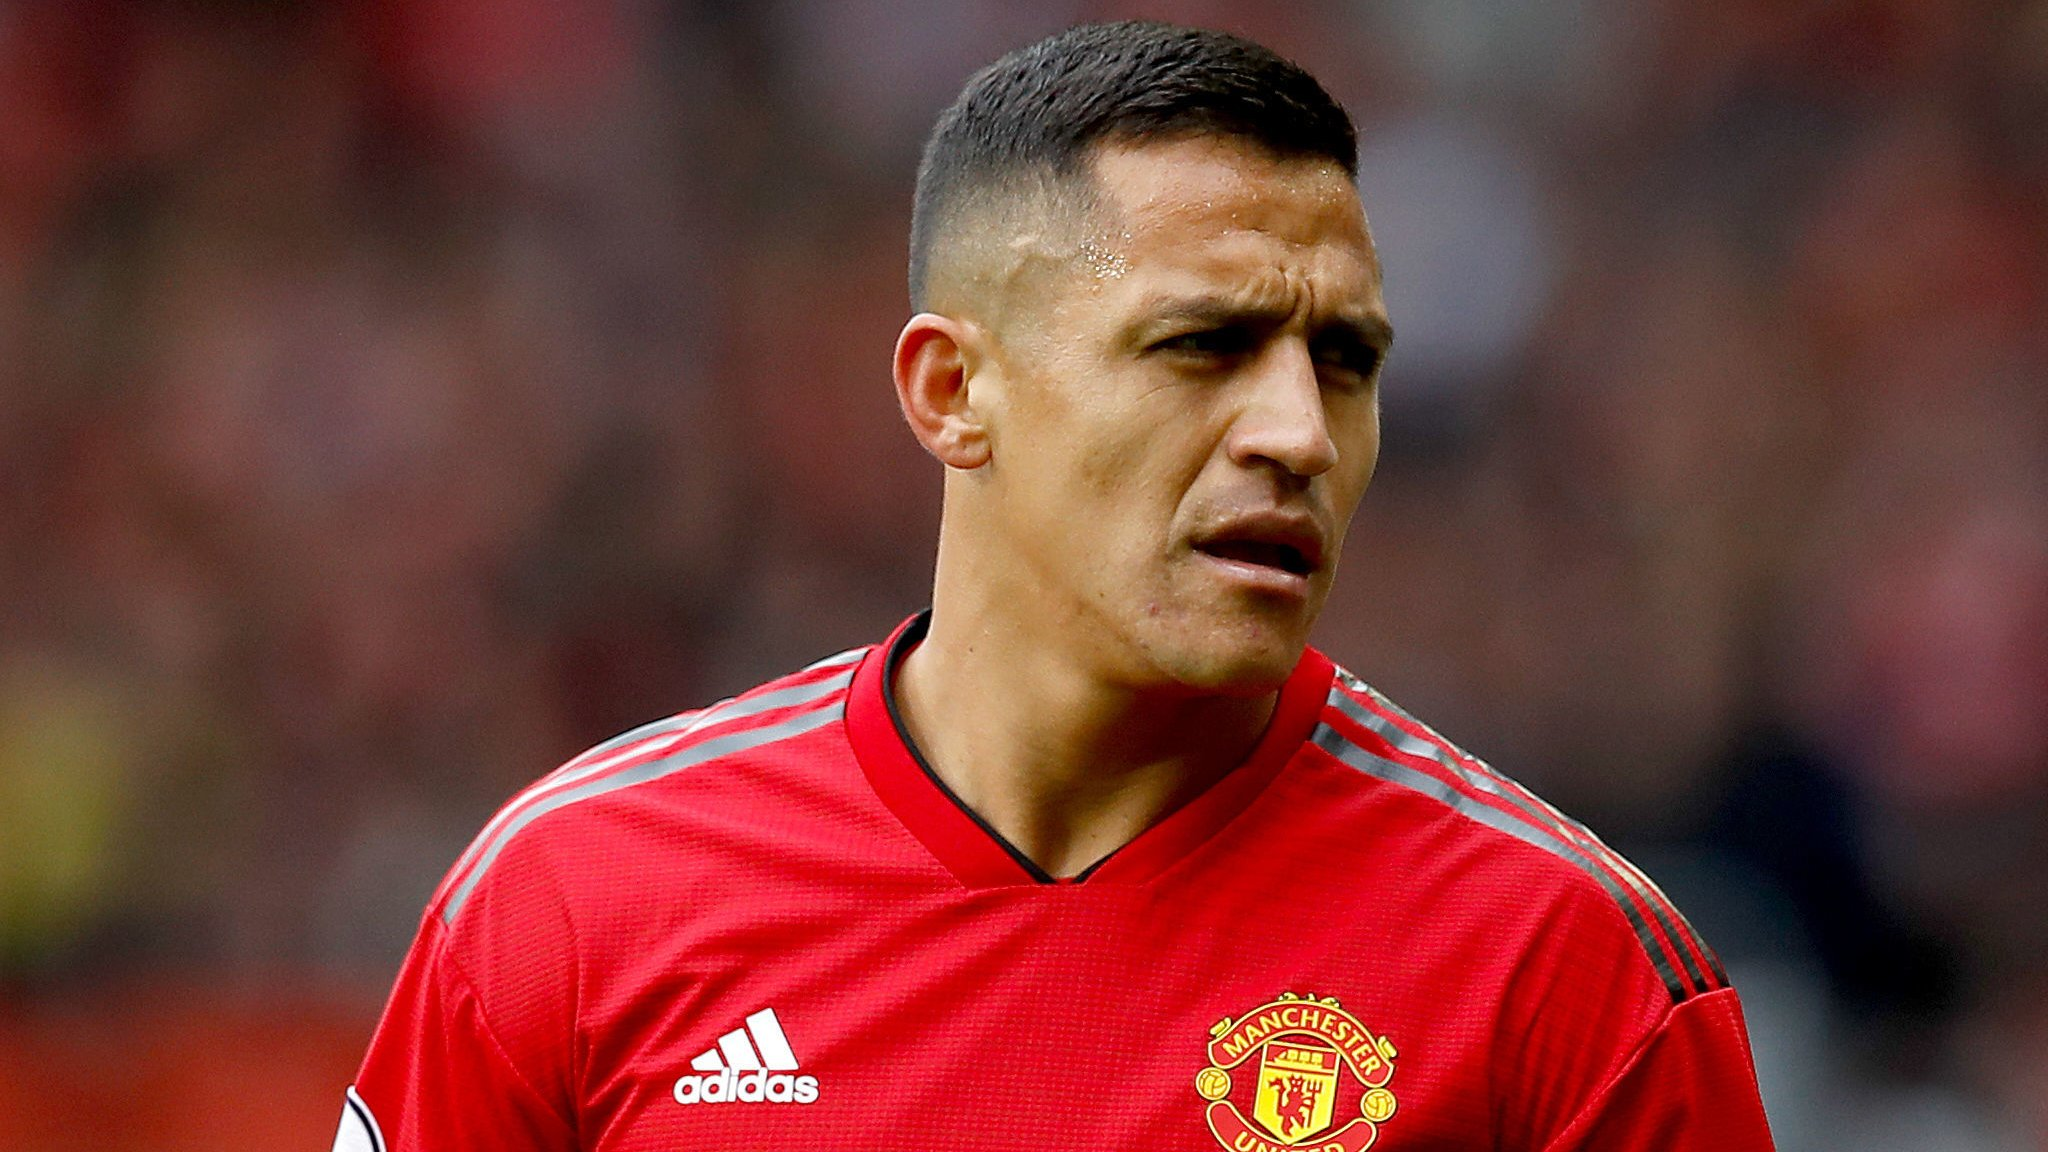 Sanchez may face Man Utd exit if he does not improve - Wright